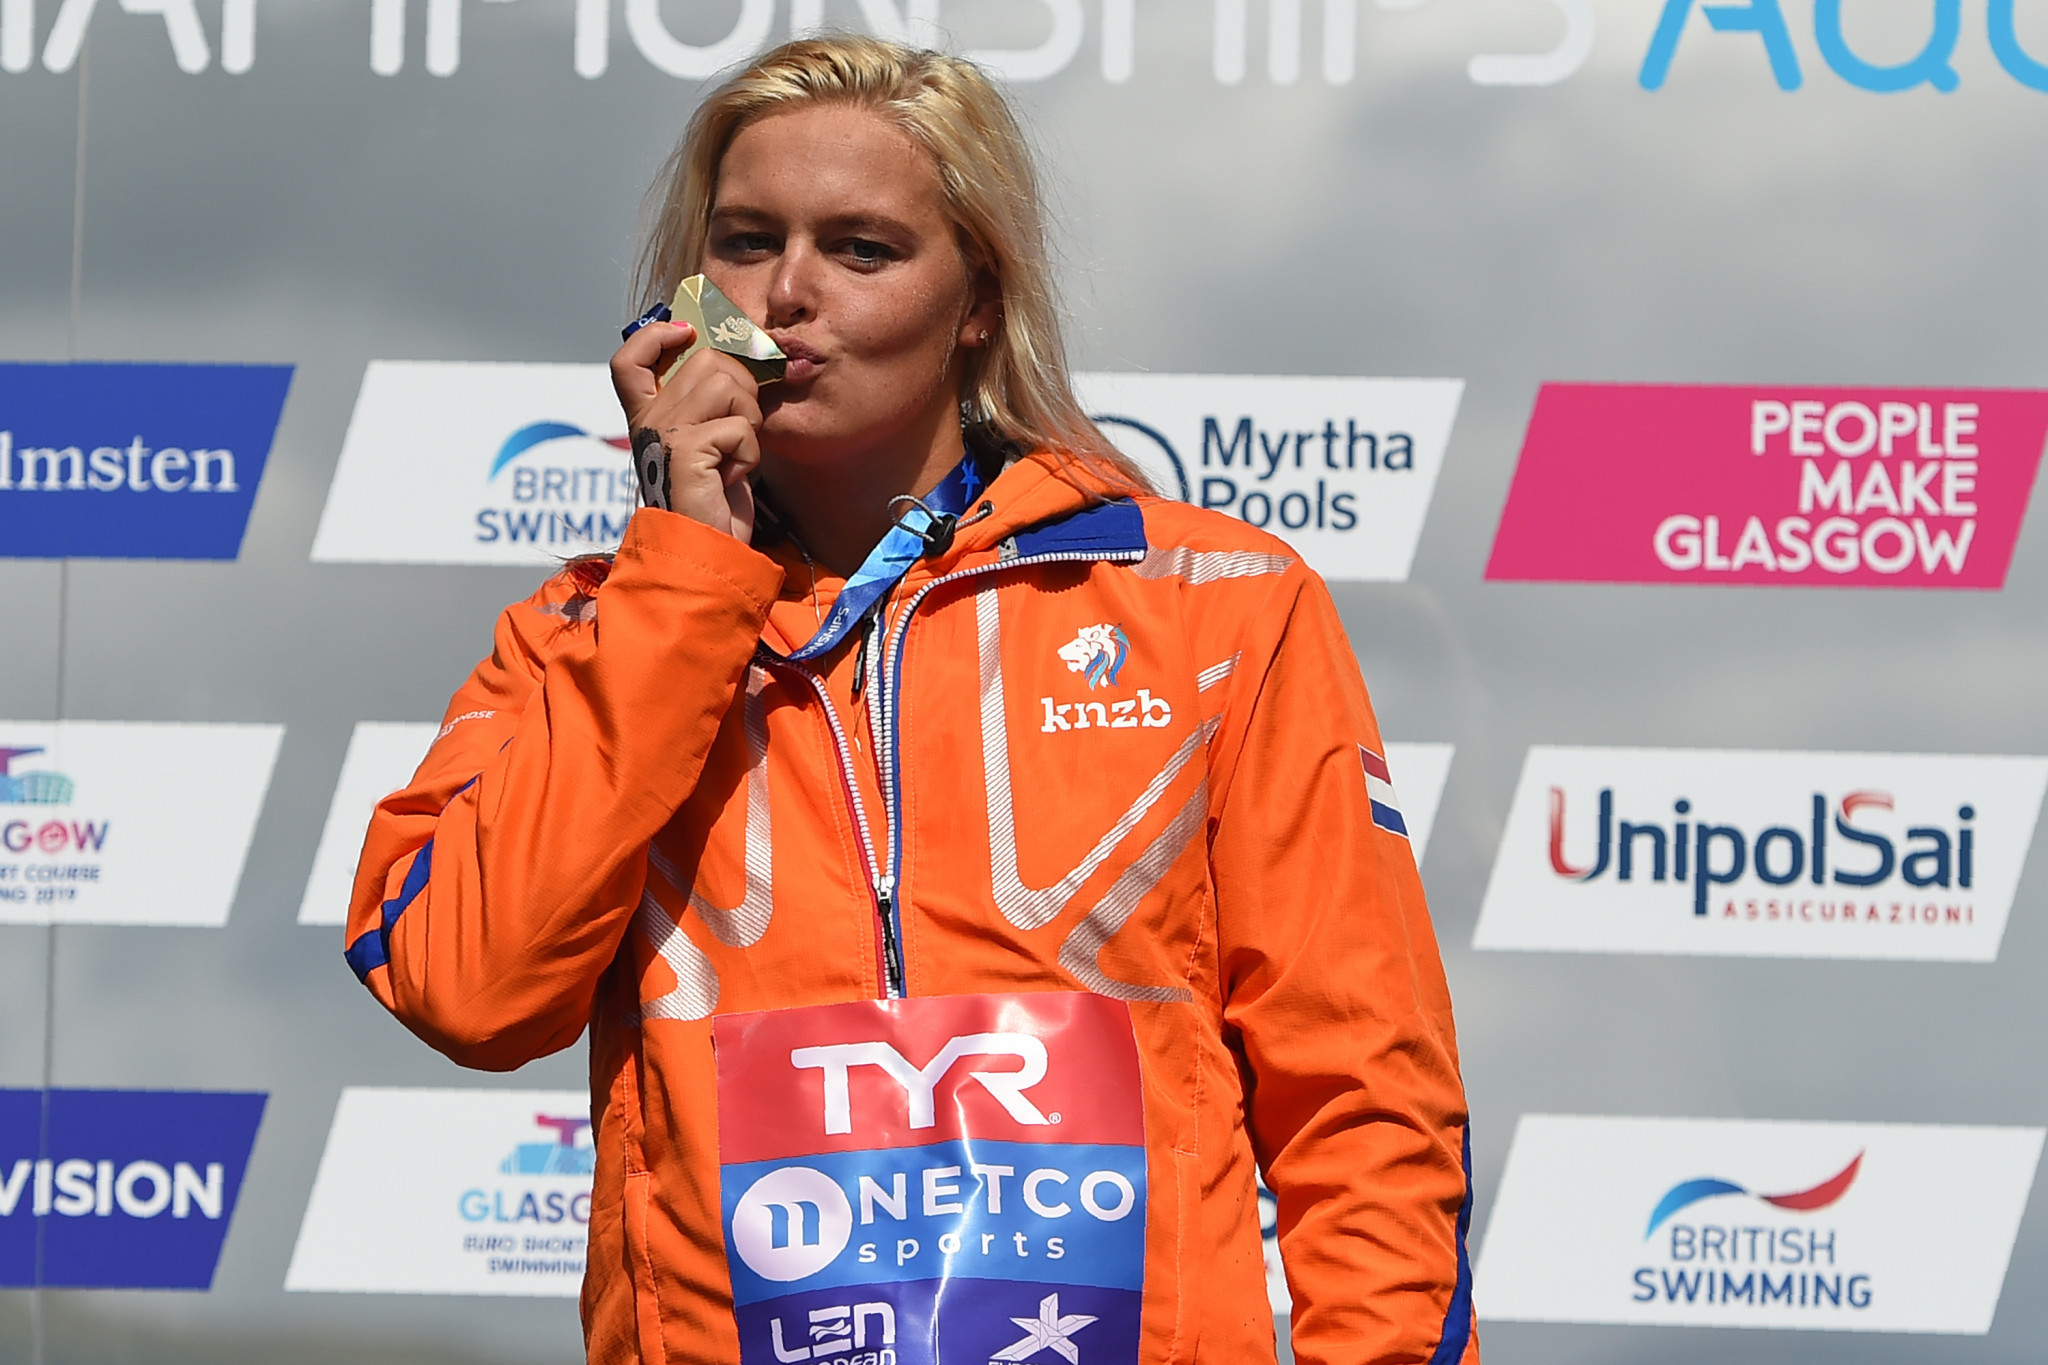 The Netherlands' Sharon van Rouwendaal claimed her second gold medal of the European Championships by winning the 10km open water competition ©Getty Images